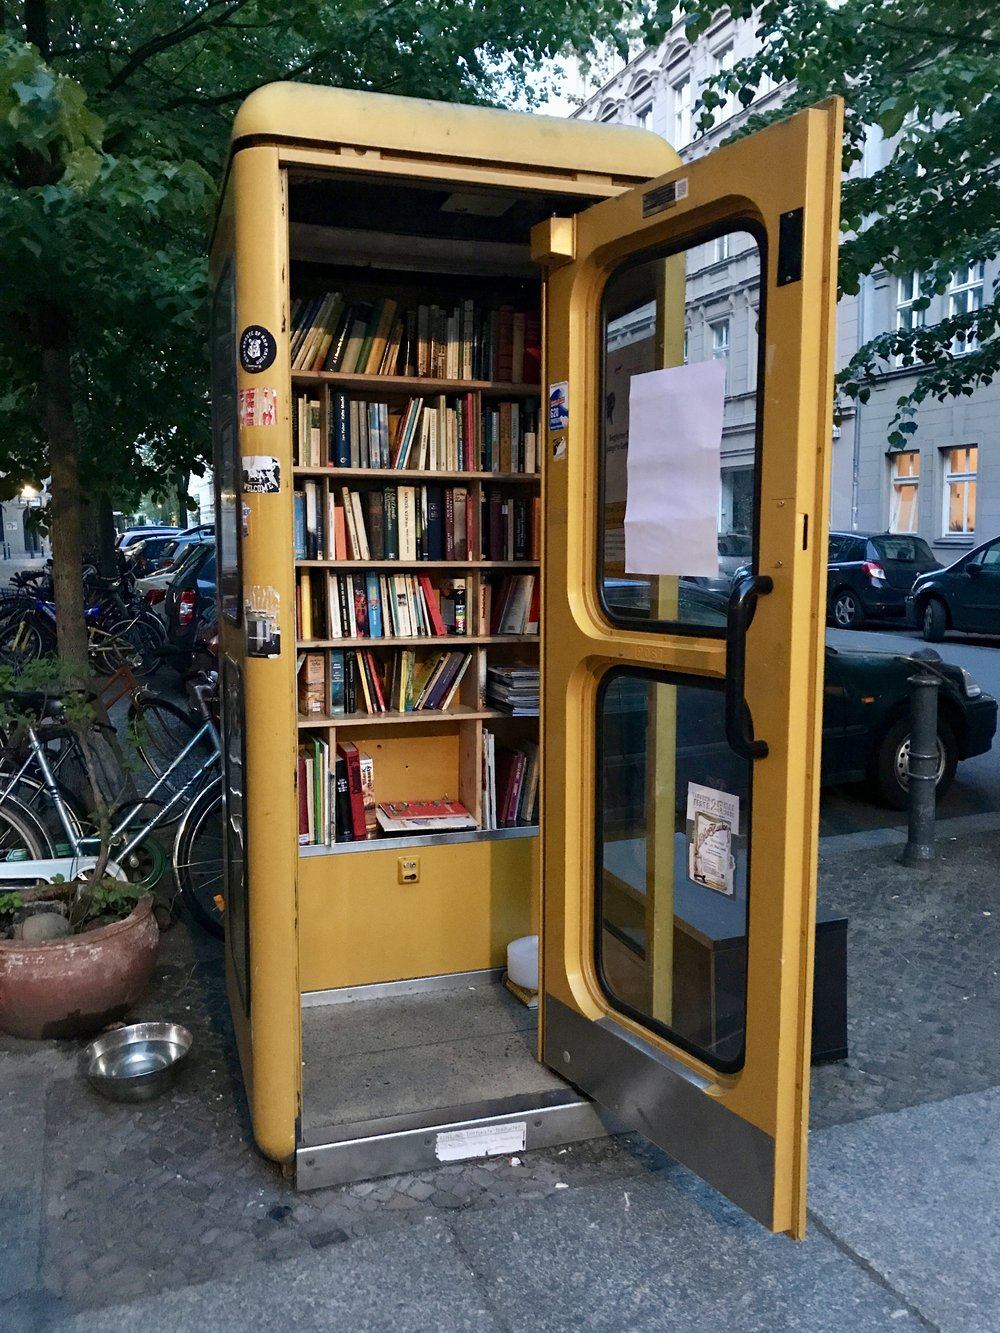 Give a book, take a book at this random library. I've seen these in London, too, and love that old phone booths can be used for something other than advertisements for sex hotlines.